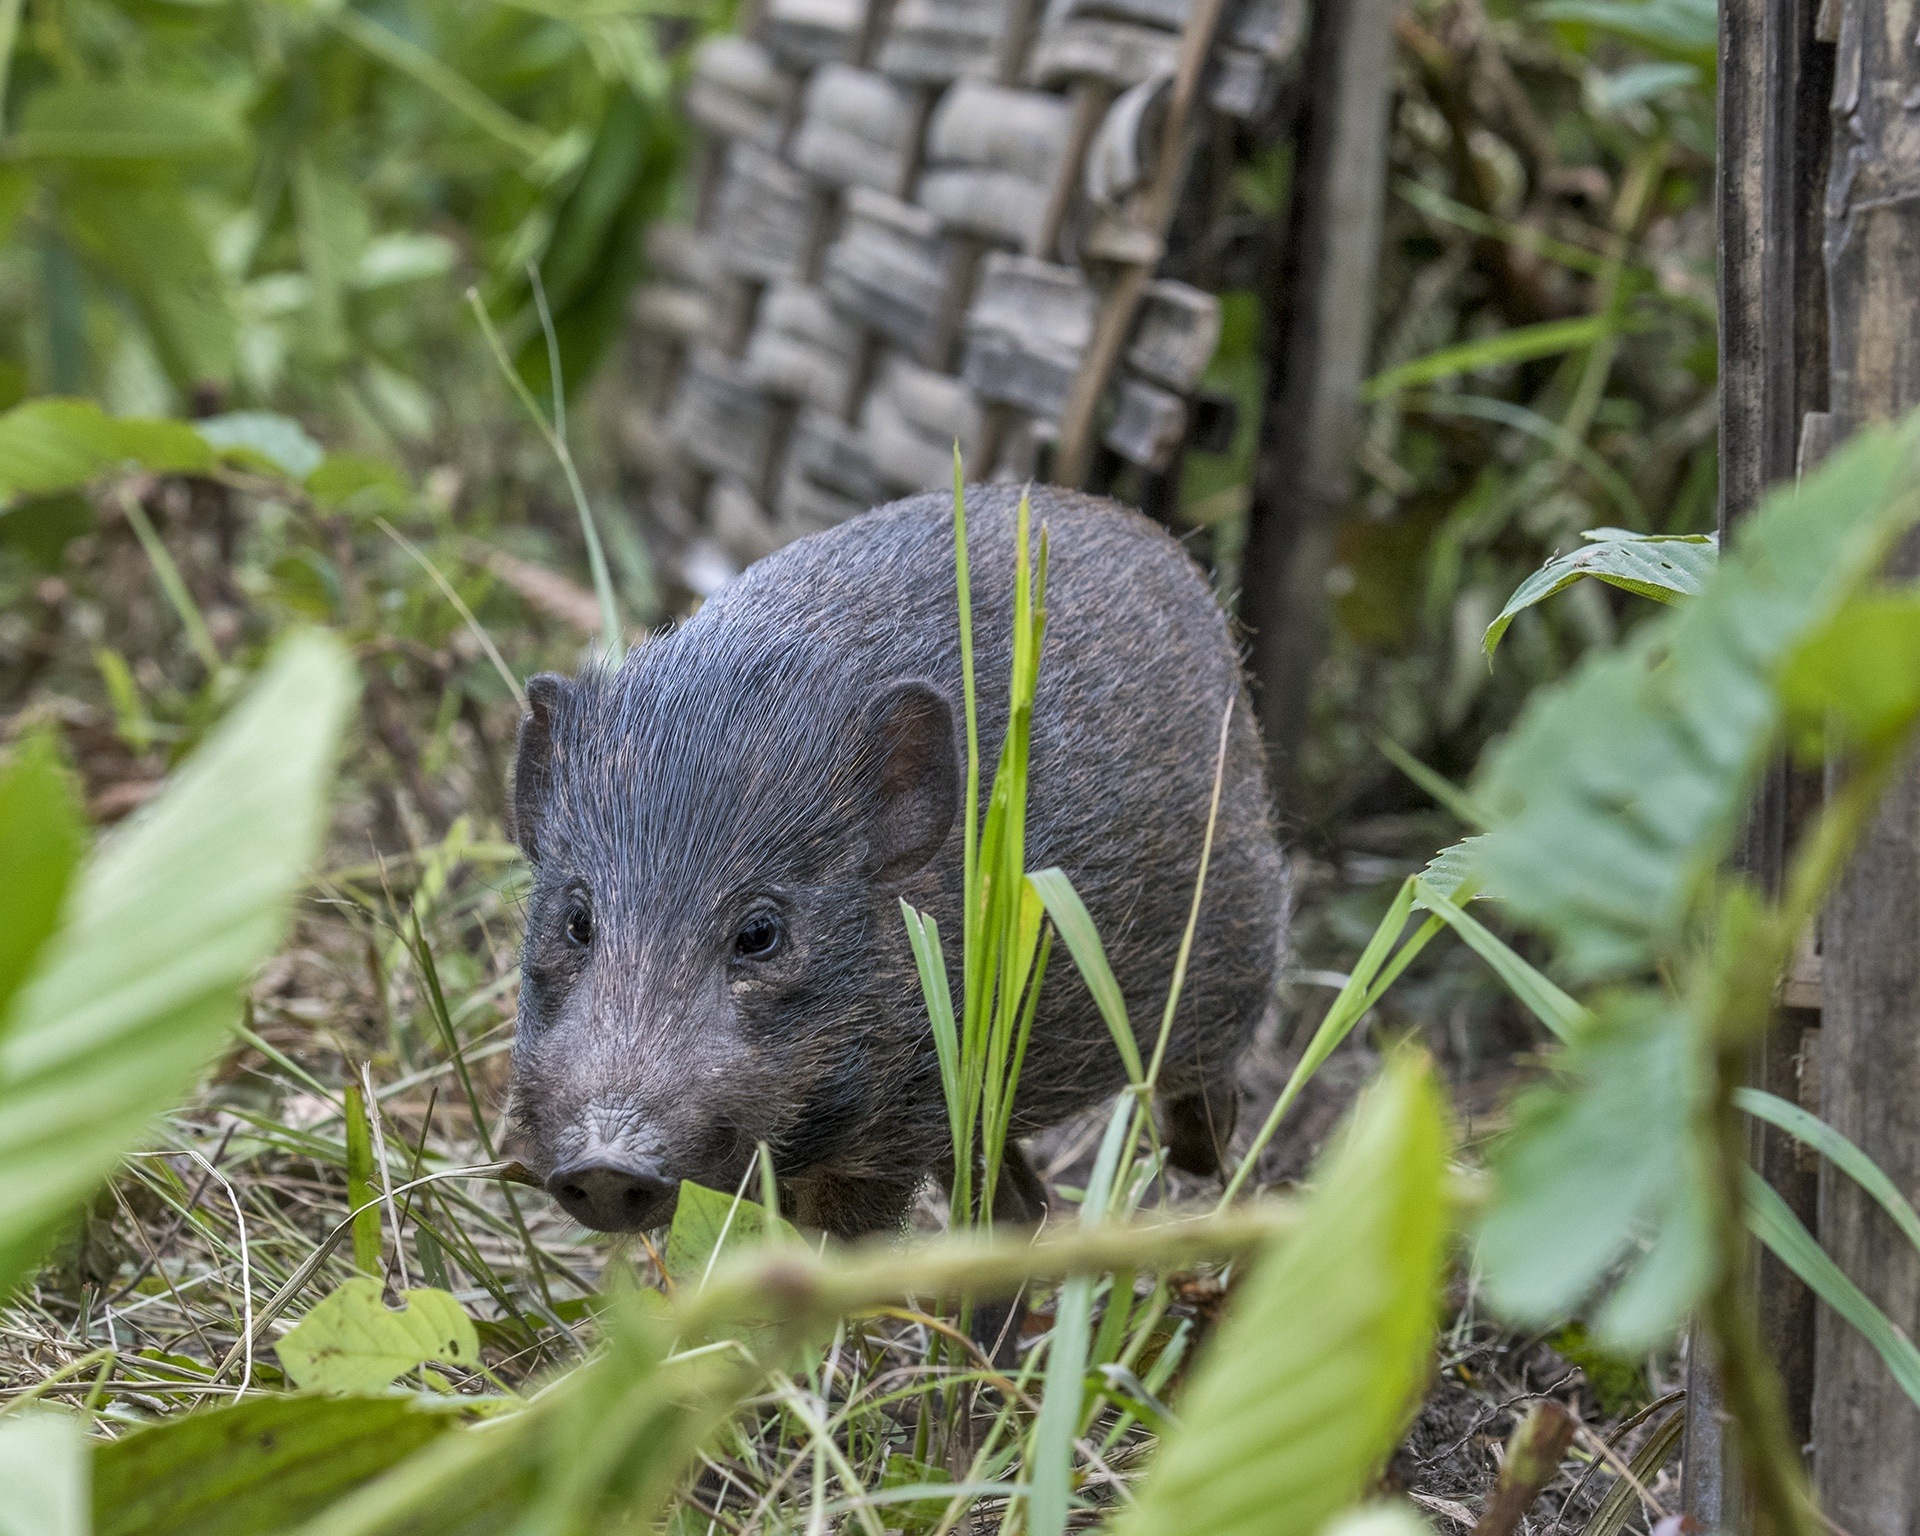 The rarest wild pig species of the world, the pygmy hog, was wiped out of the wilderness in the 1960s. It can now be found in the grasslands of Assam thanks to the Pygmy Hog Conservation Programme Photo: Udayan Borthakur